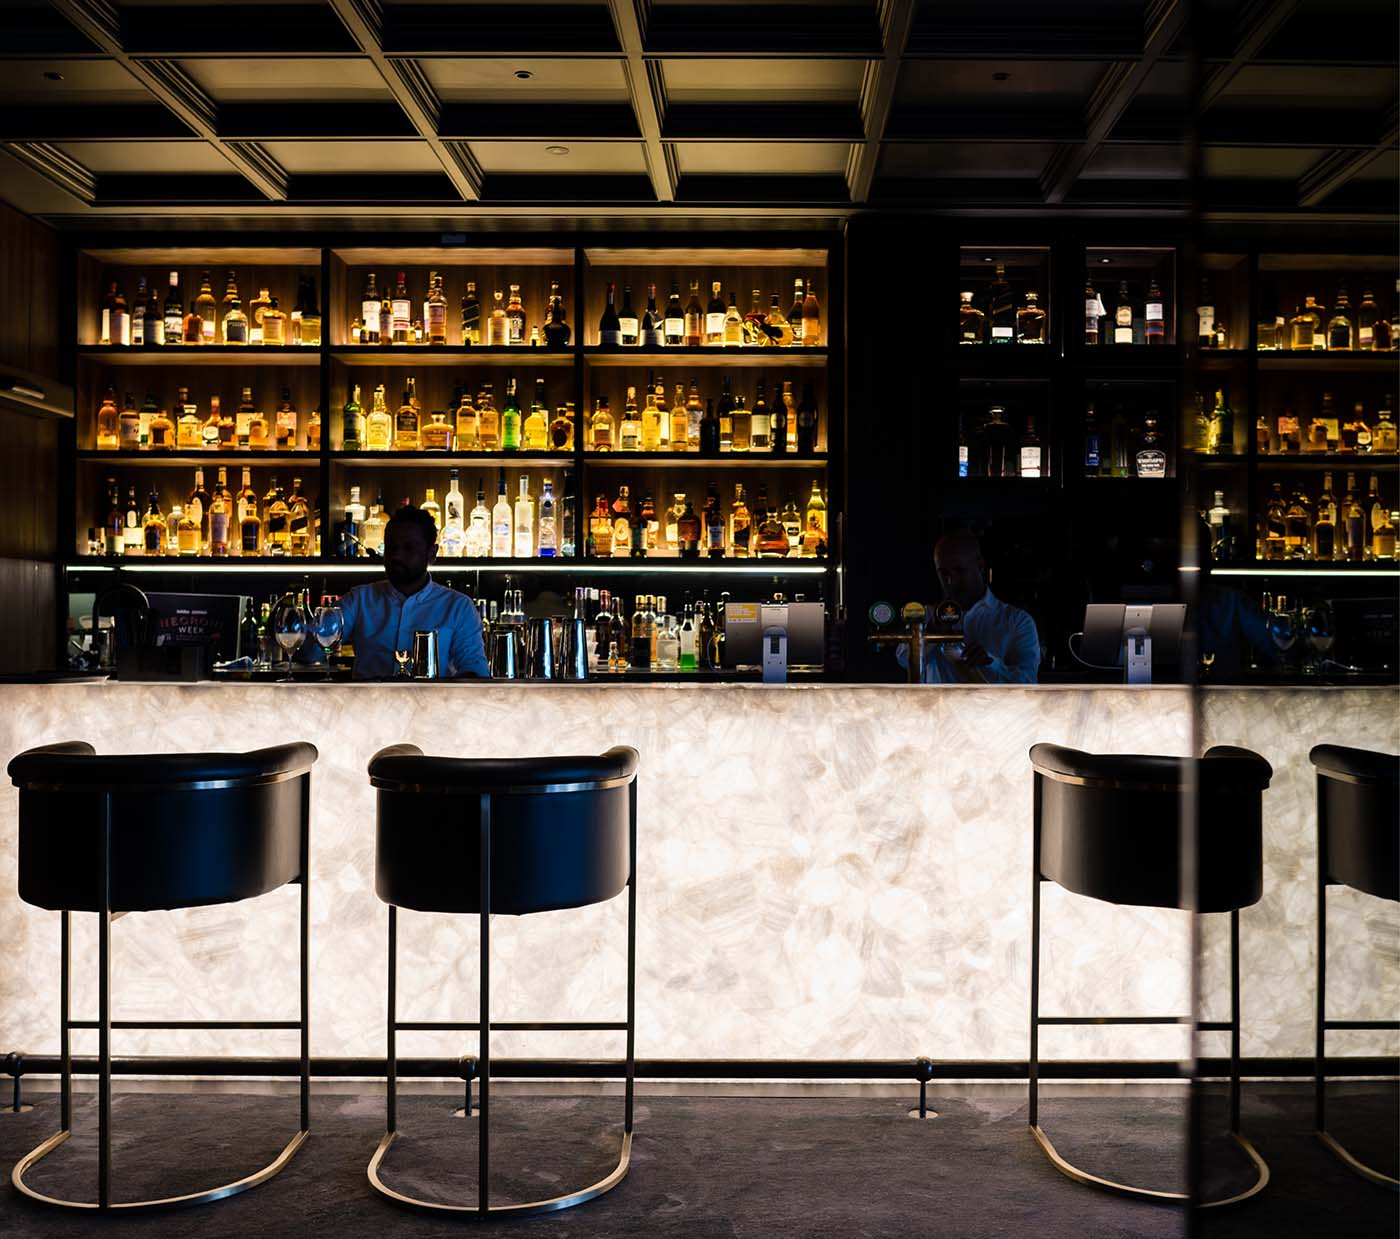 Whiskey bar detail with back-lit-onyx bar showing drinks and a man preparing cocktails.